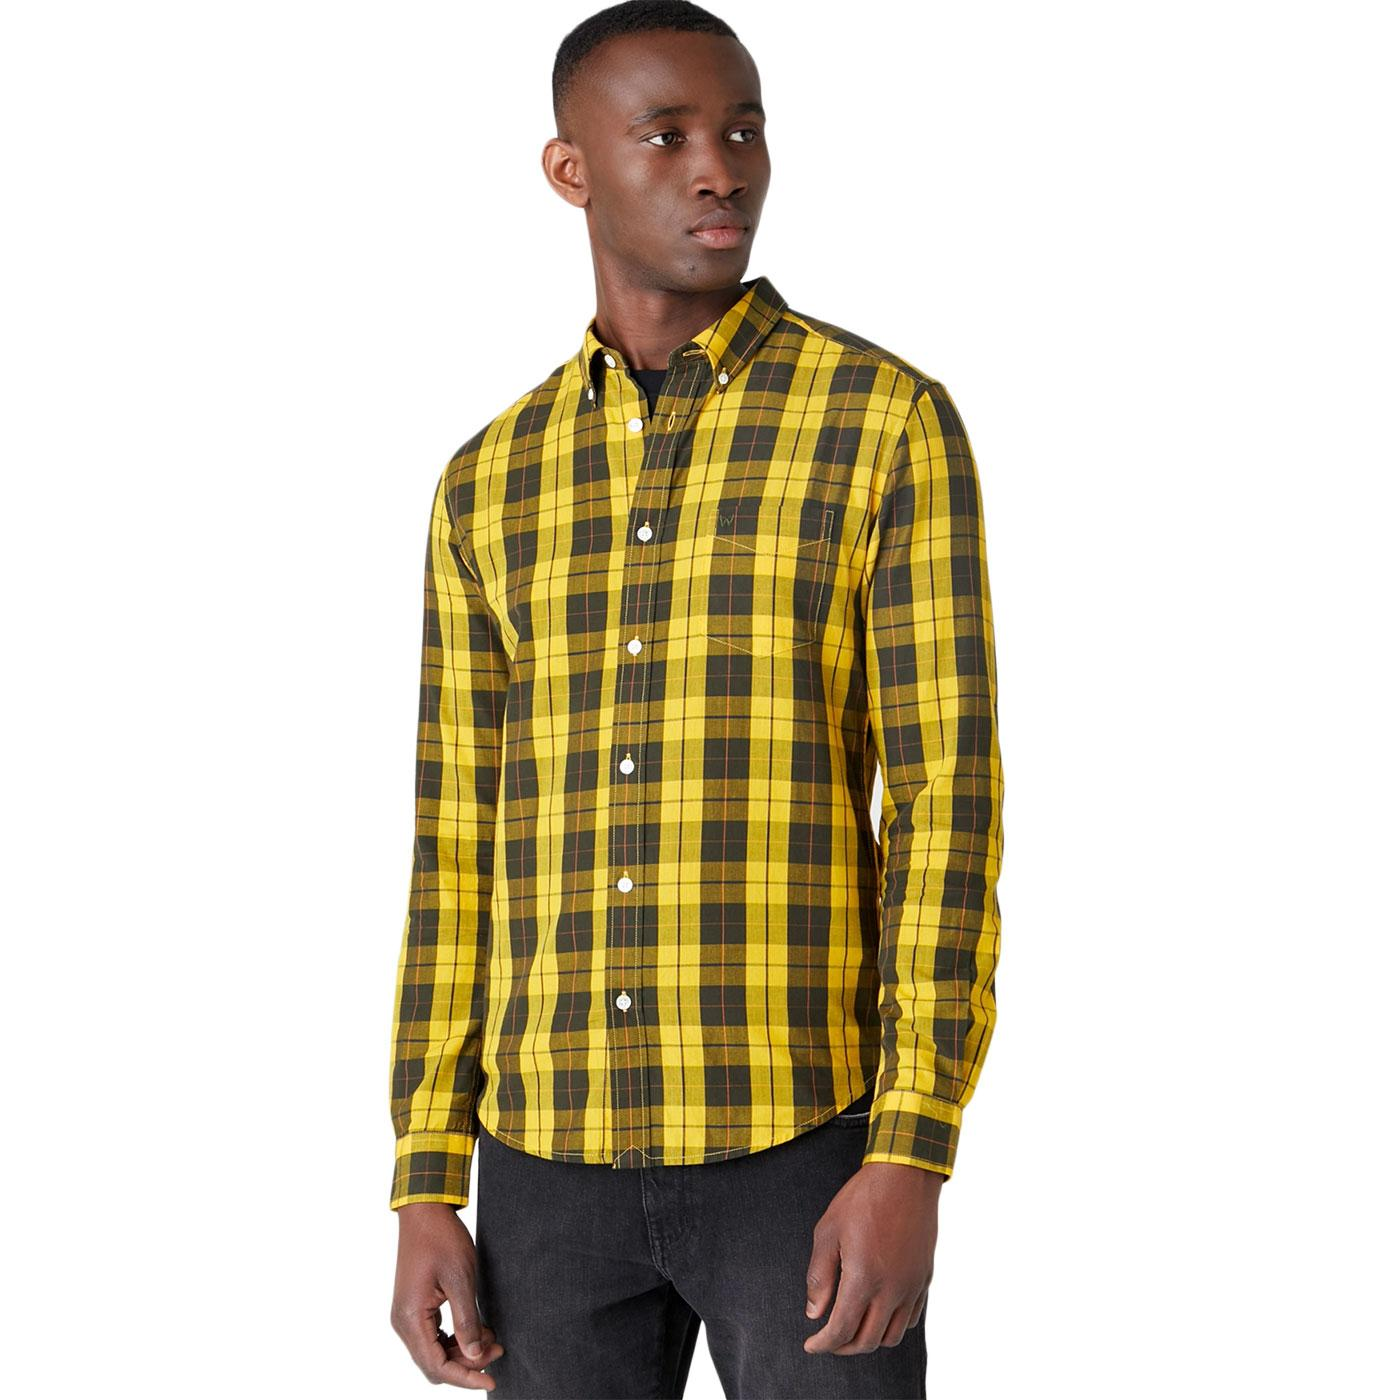 WRANGLER Retro Mod Button Down Check Shirt (Gold)